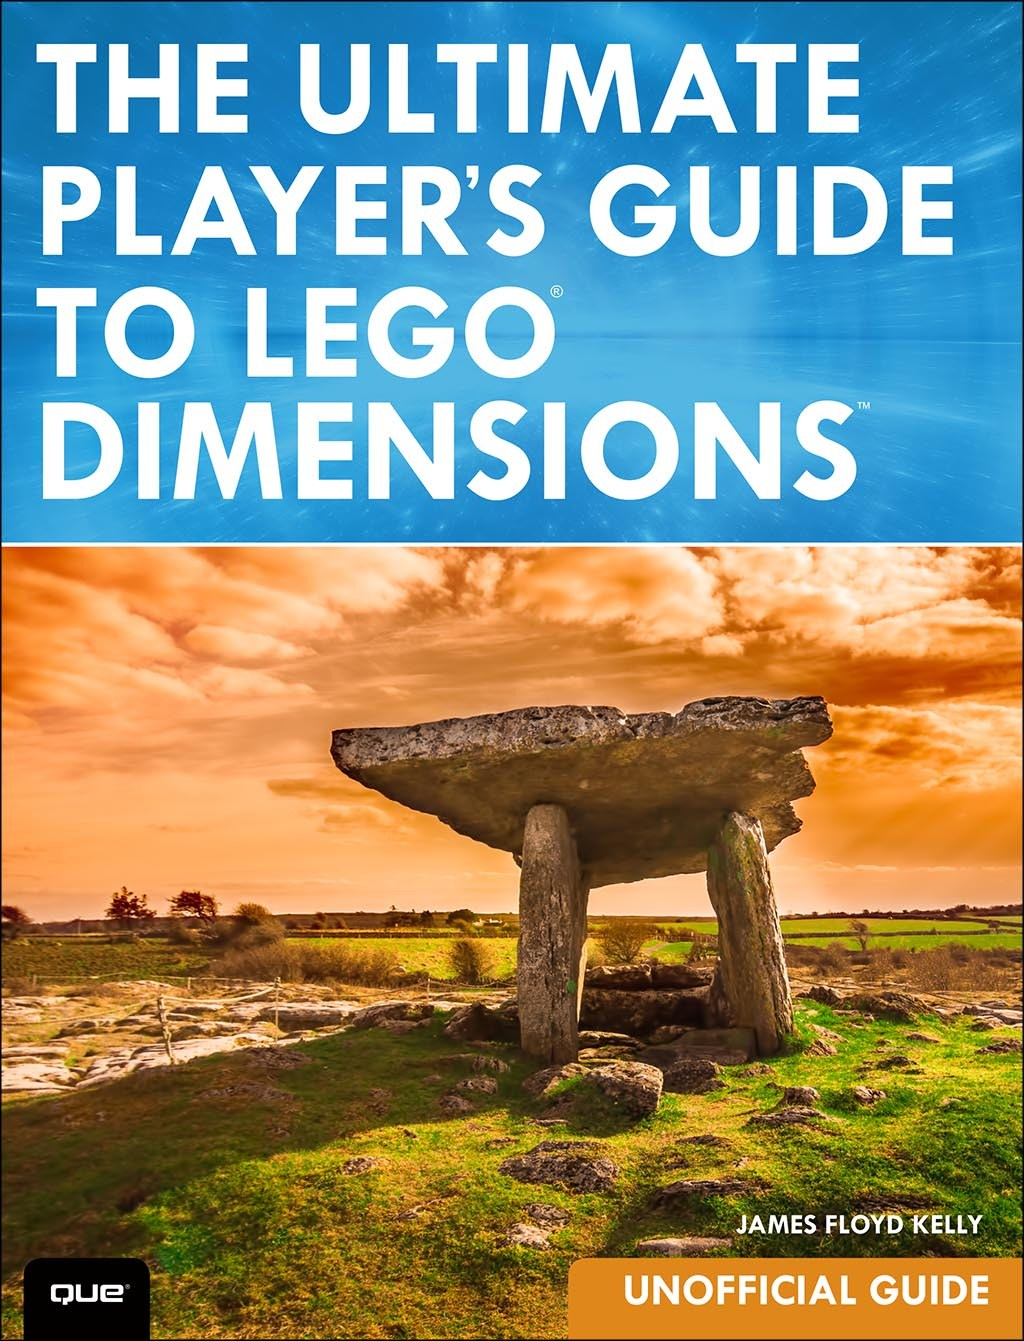 Ultimate Player's Guide to LEGO Dimensions [Unofficial Guide], The 9780789757425